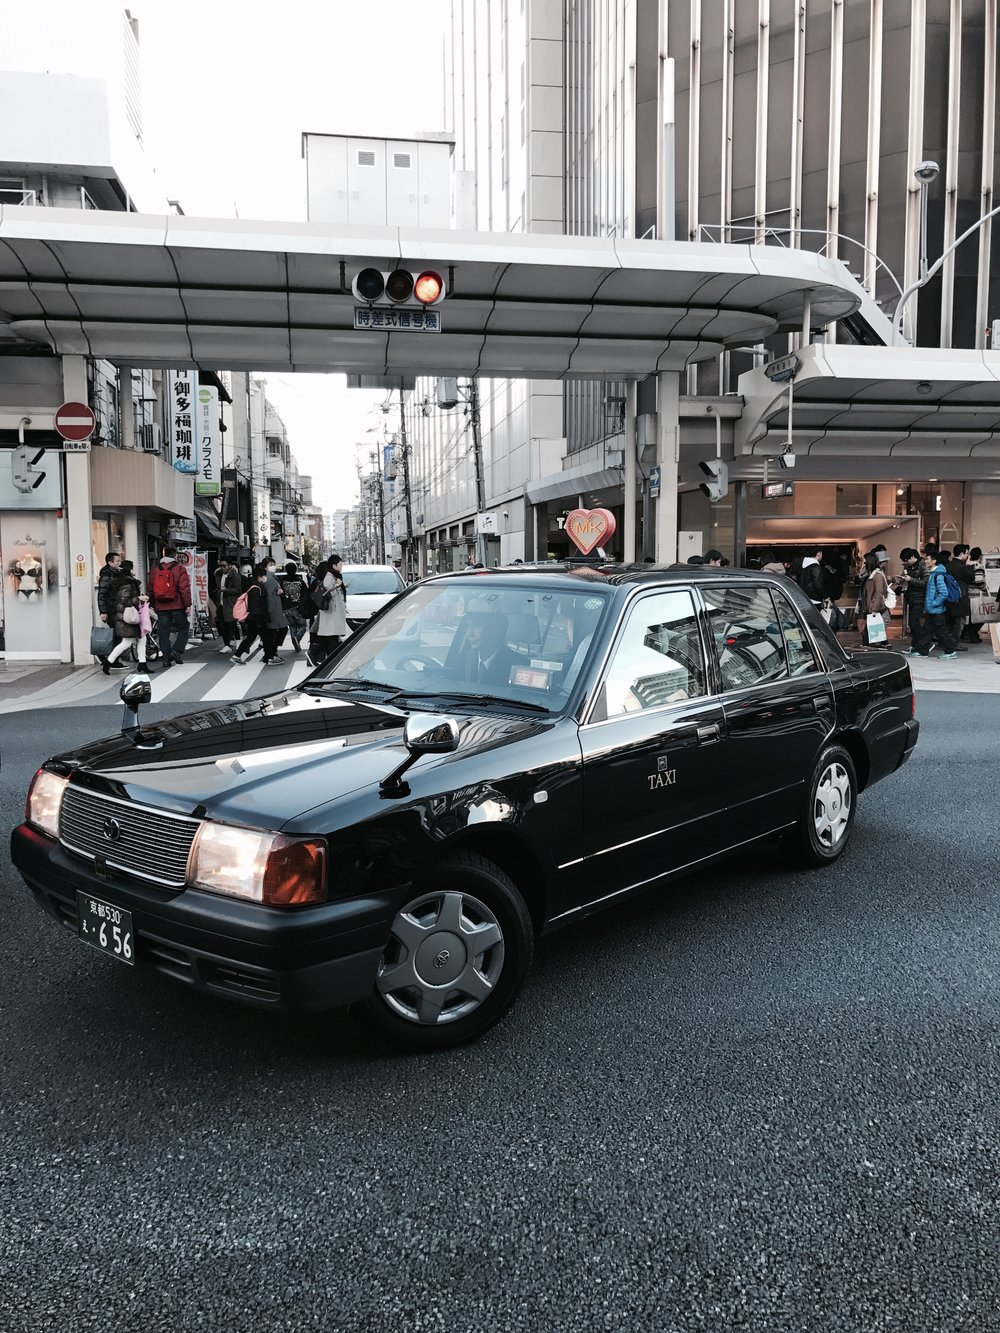 The taxi cabs in Japan are so kawaii!  (Kyoto, Japan)